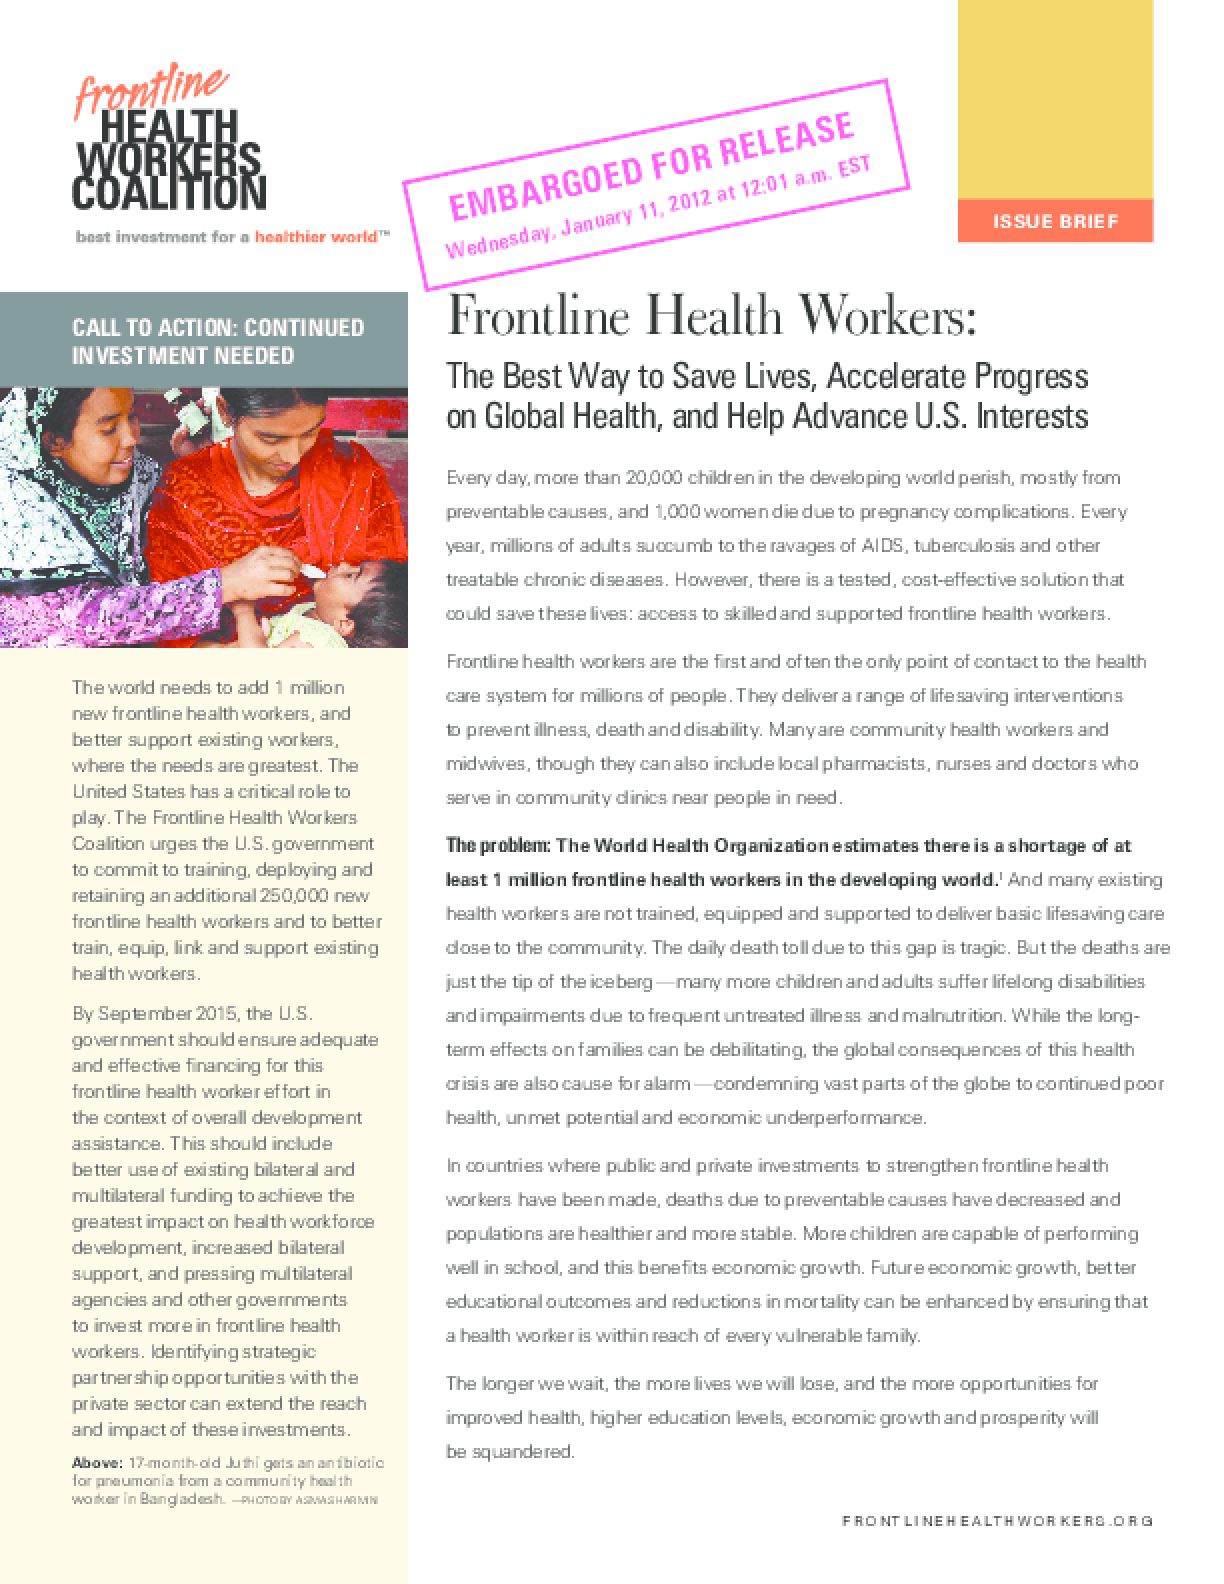 Frontline Health Workers: The Best Way to Save Lives, Accelerate Progress on Global Health, and Help Advance U.S. Interests